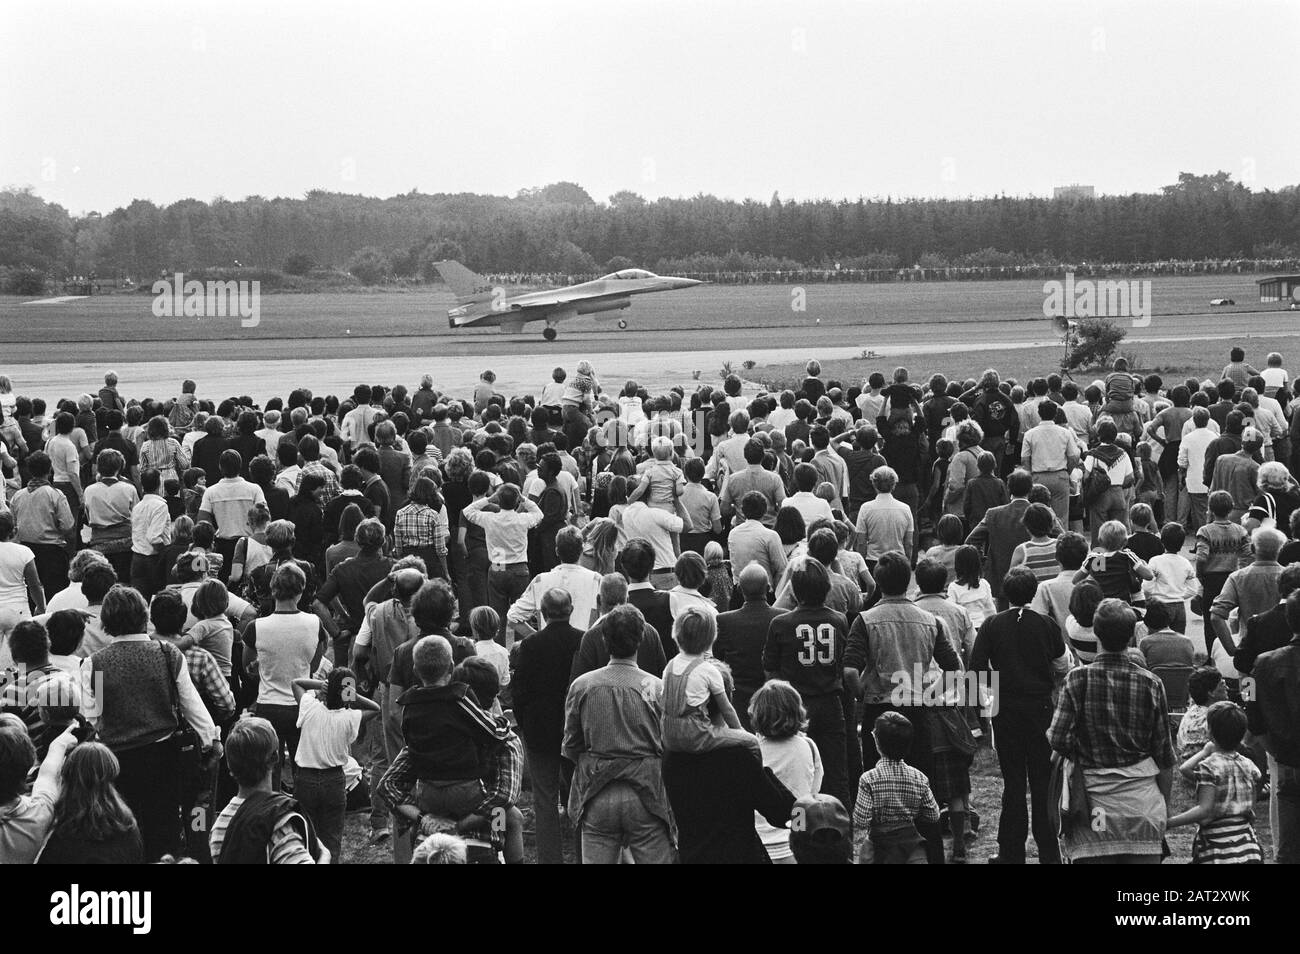 Open day at Soesterberg Air Force Base  Big crowds at Soesterberg Air Force Base while a Mc Donnell Douglas F 15 Eagle fighter aircraft start Date: September 12, 1981 Location: Soesterberg, Utrecht ( province) Keywords: fighter aircraft, air force, crowd, airports Stock Photo